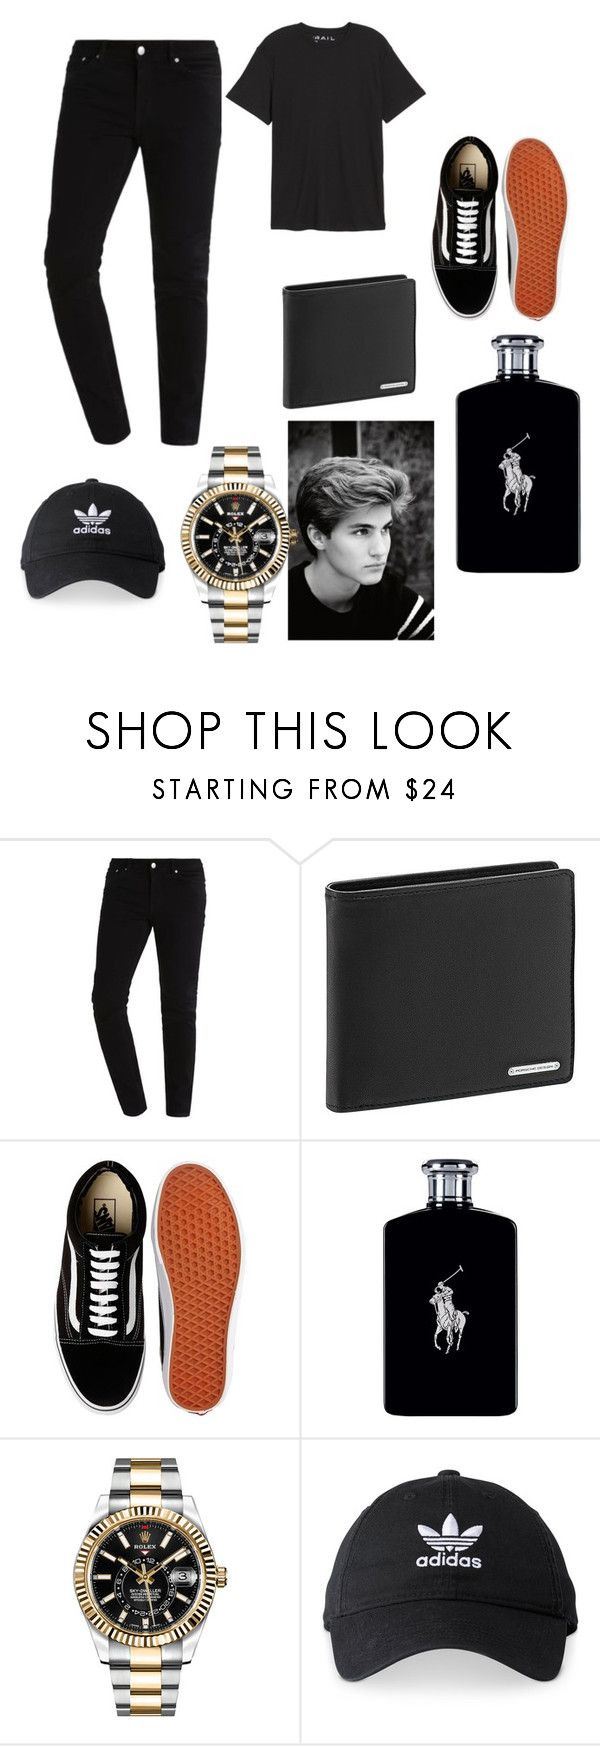 """Untitled #4"" by irelendtyler ❤ liked on Polyvore featuring Porsche Design, Vans, Ralph Lauren, Rolex, adidas, Public Opinion, men's fashion and menswear"